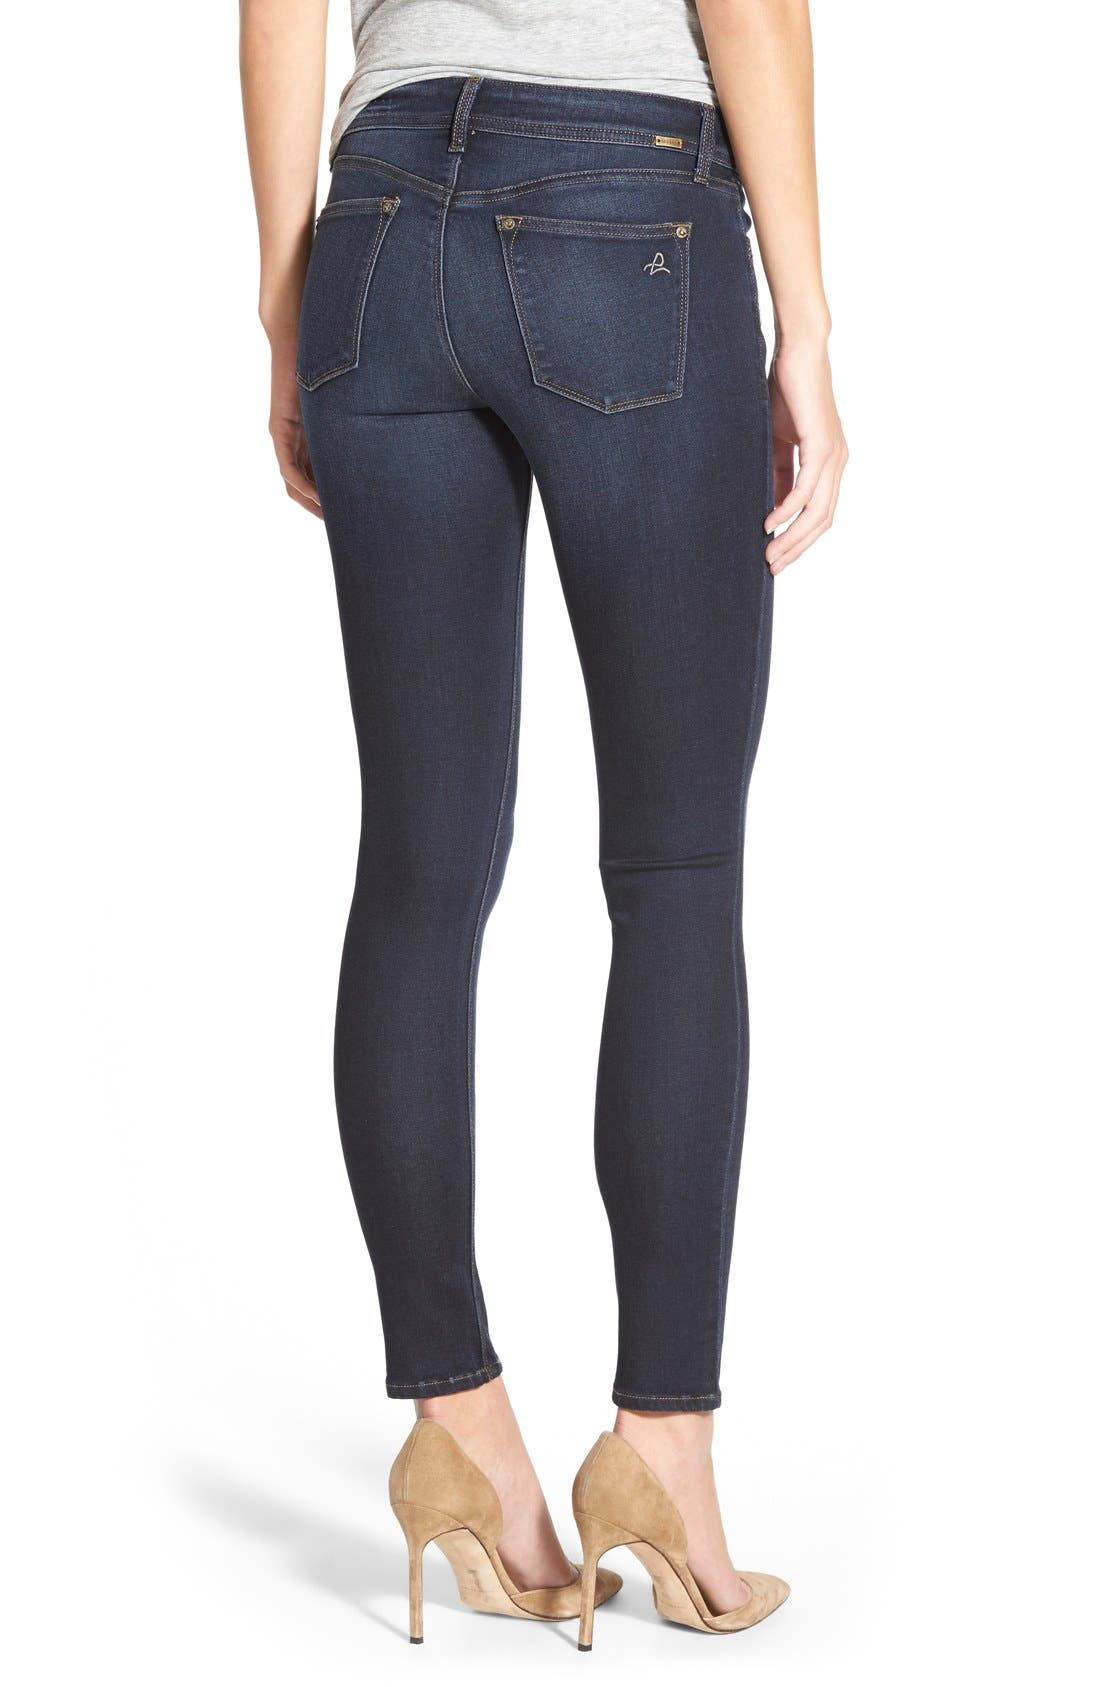 'Emma' Power Legging Jeans,                             Alternate thumbnail 6, color,                             405